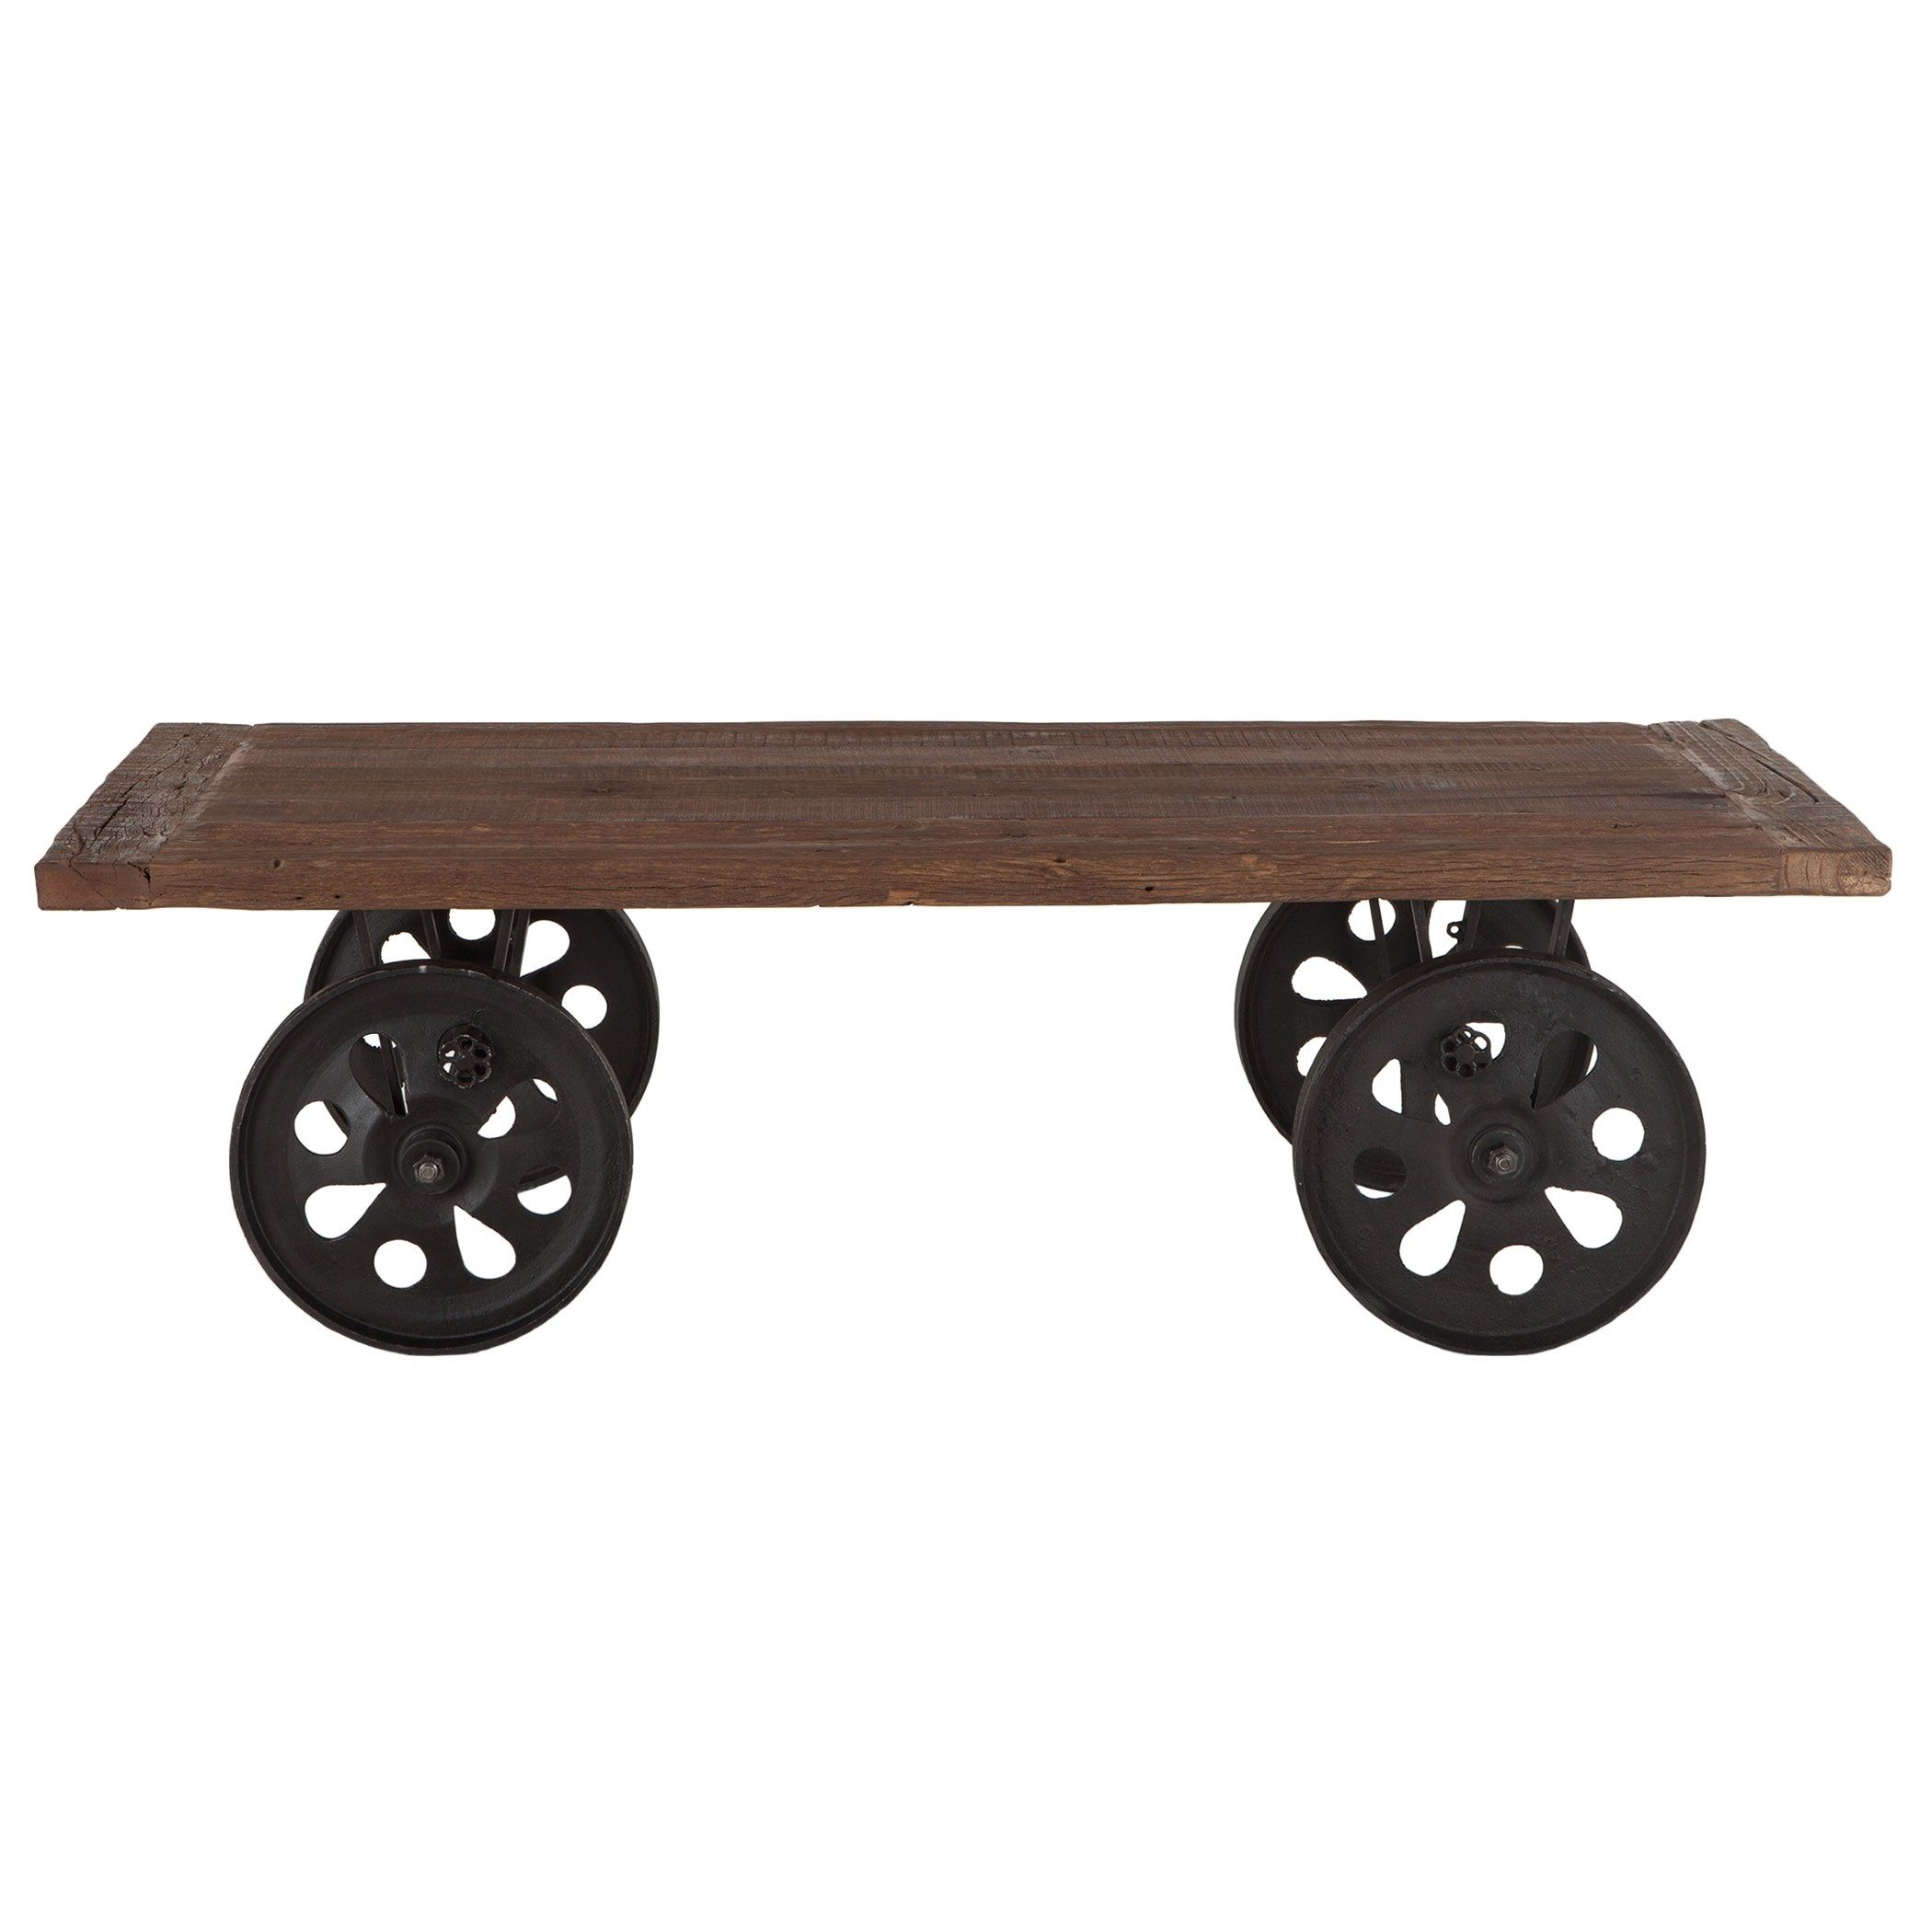 Artezia 64 Inch Reclaimed Teak Coffee Table With Wheels Assembled